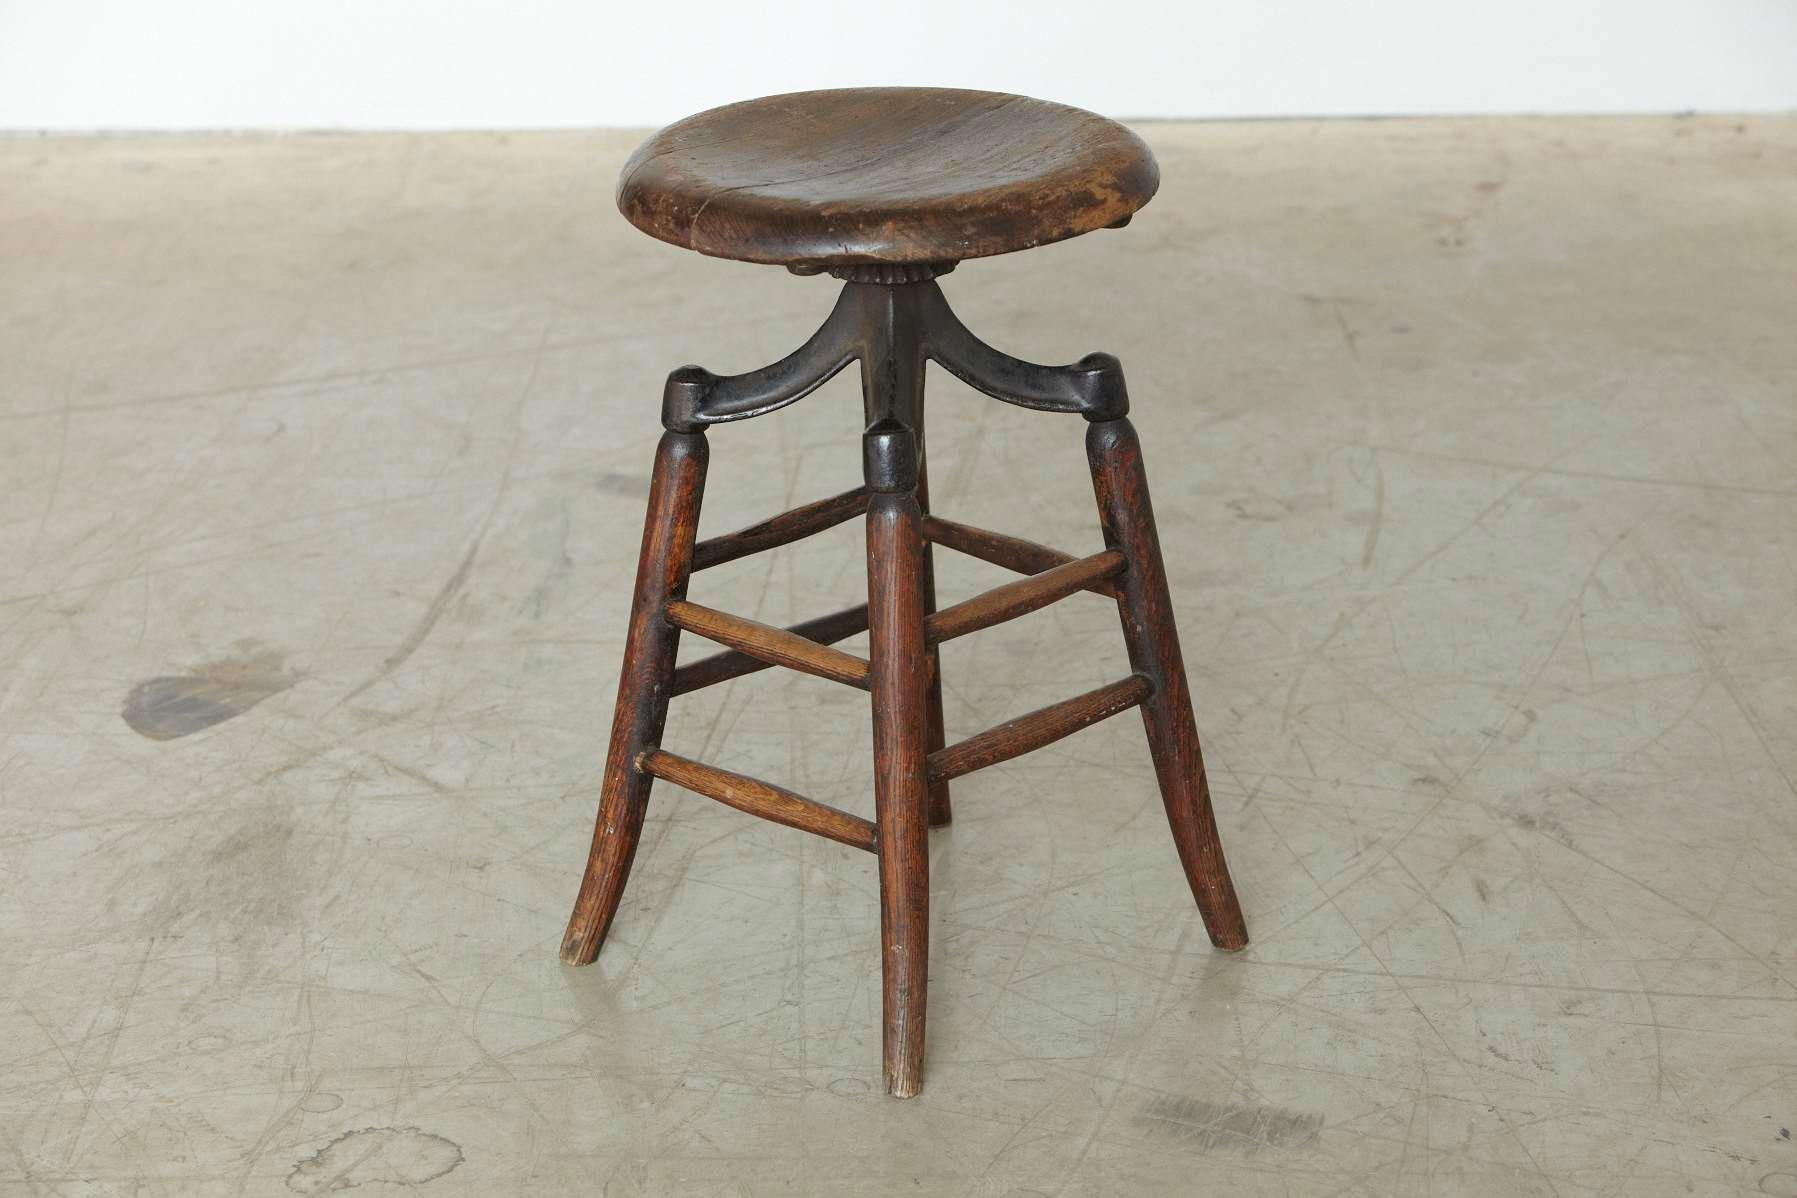 Astonishing Industrial Solid Oak And Iron Workshop Stool Circa 1940S Ibusinesslaw Wood Chair Design Ideas Ibusinesslaworg